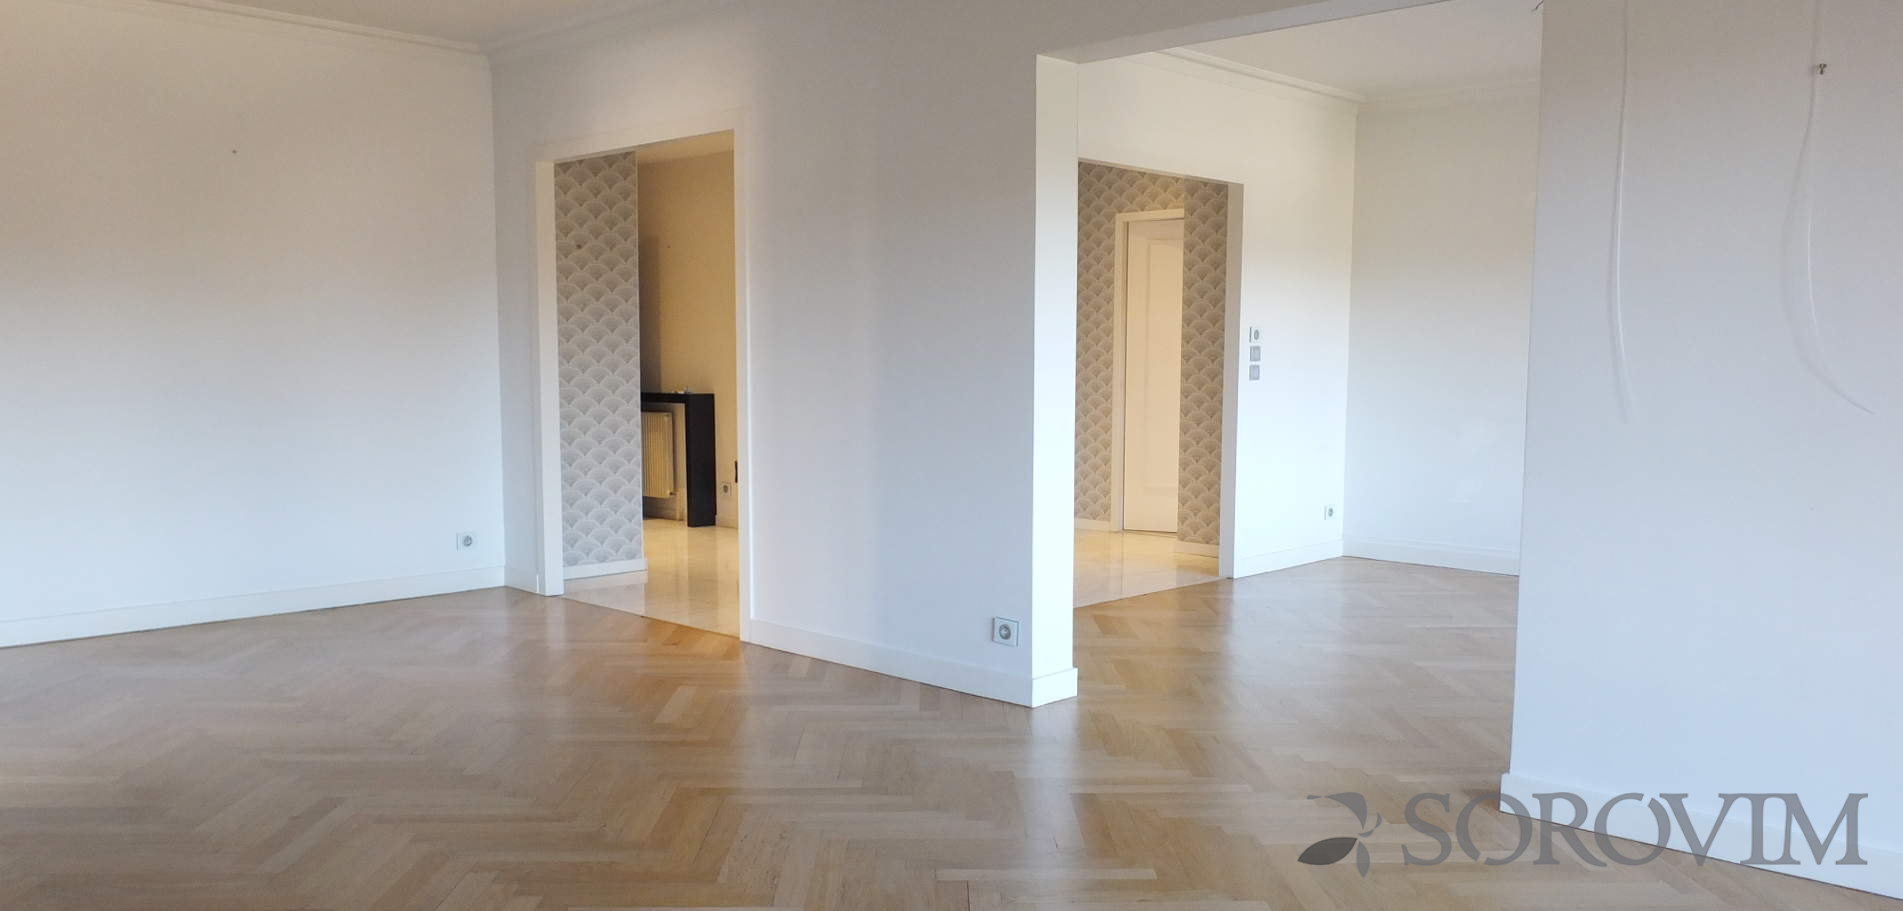 Vente appartement 160 m² - Ecully